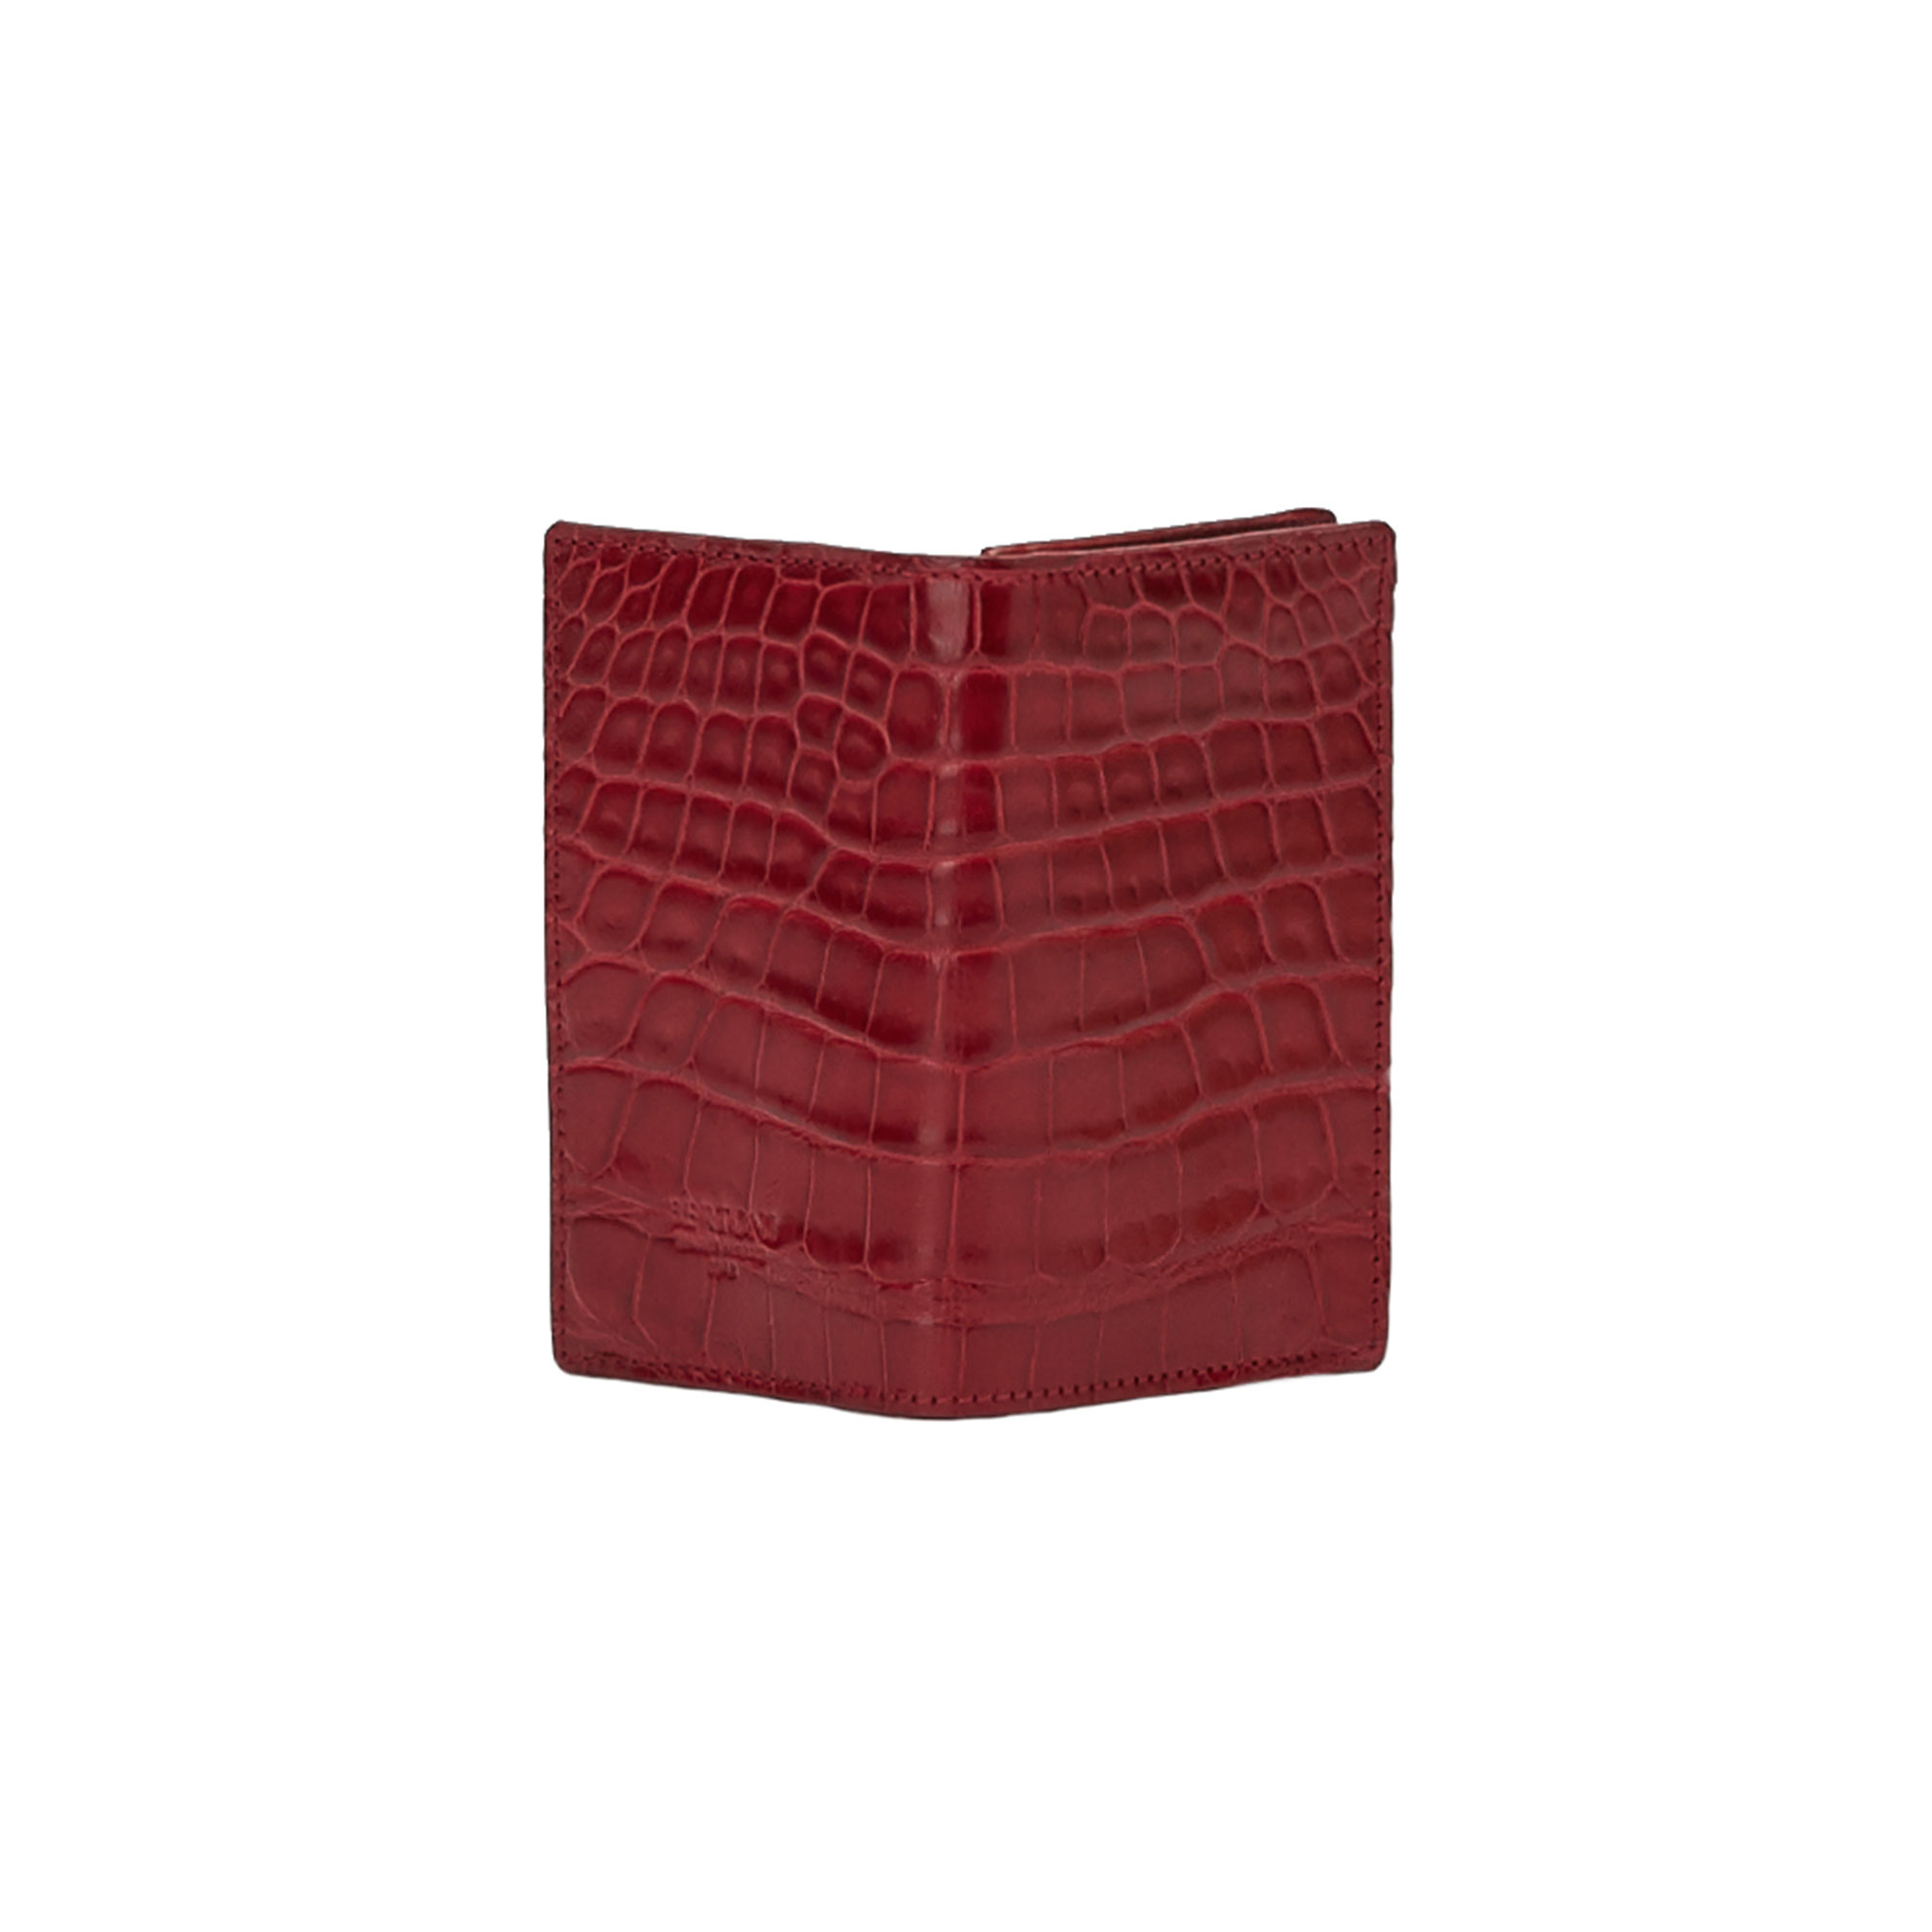 The red alligator Business Card Holder by Bertoni 1949 03